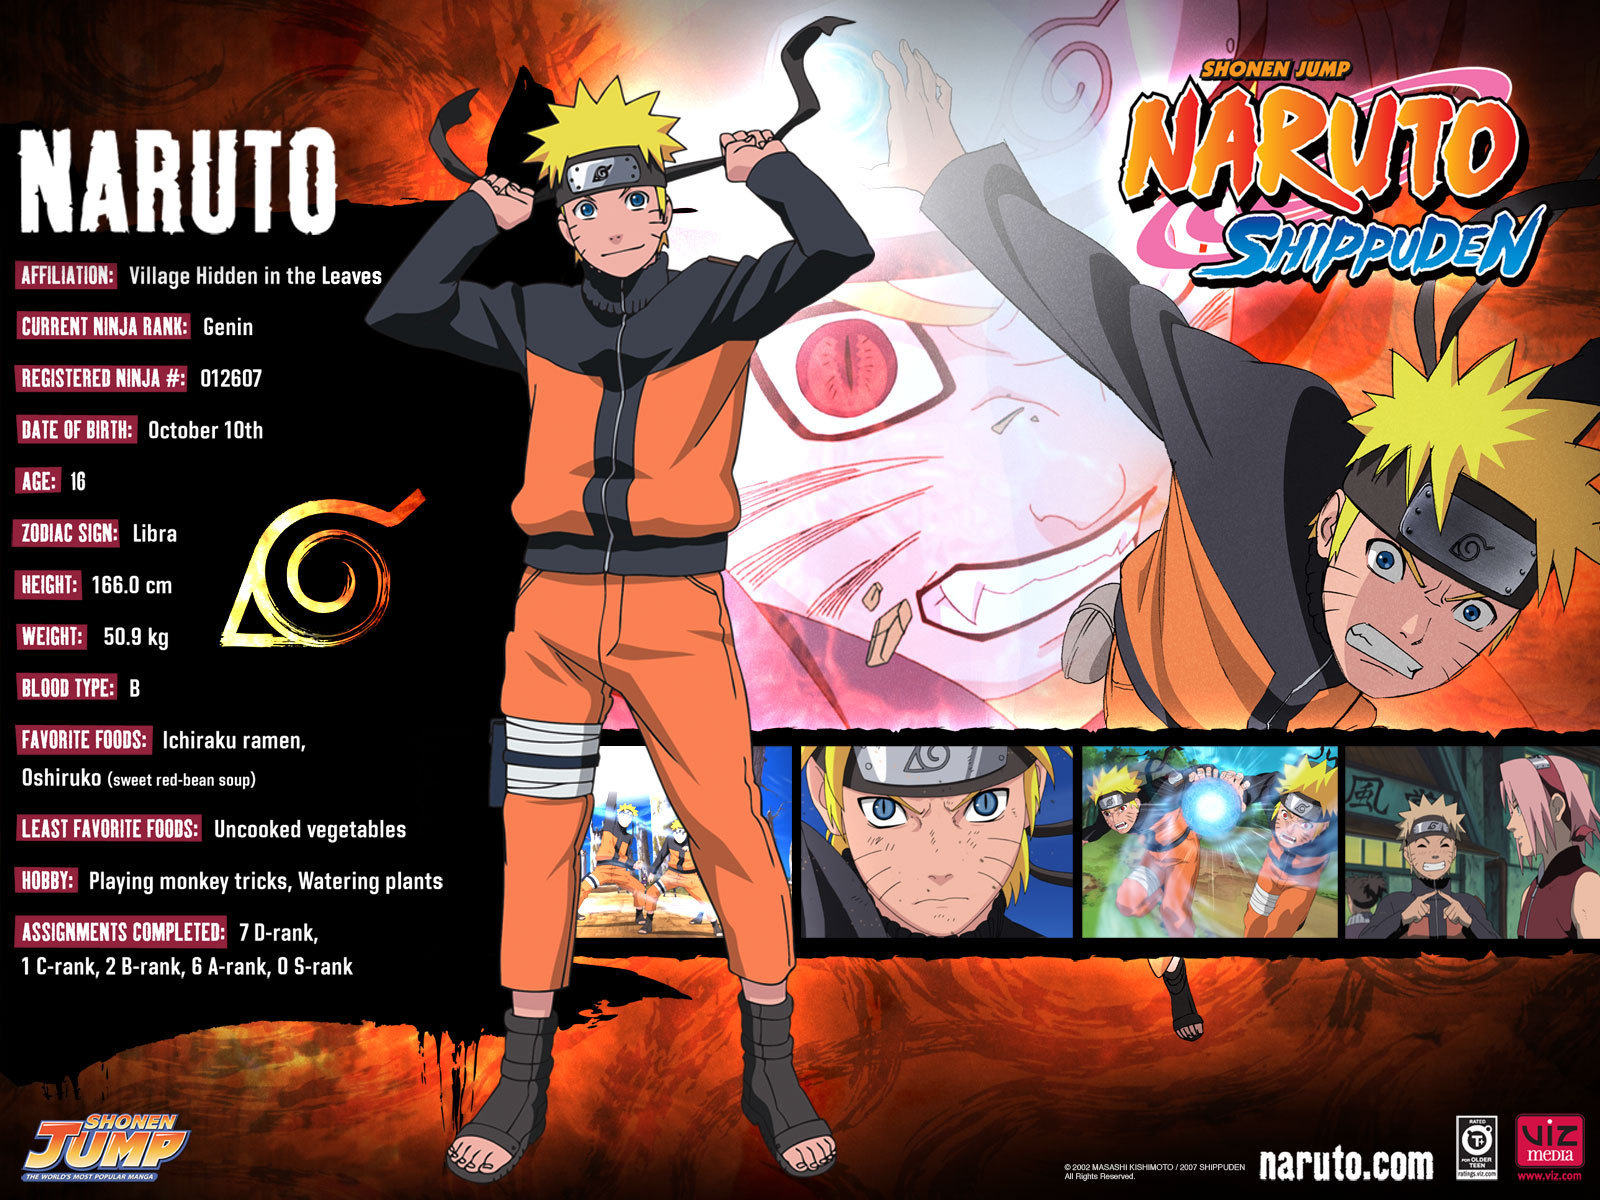 Naruto And Naruto Shippuden Wallpaper